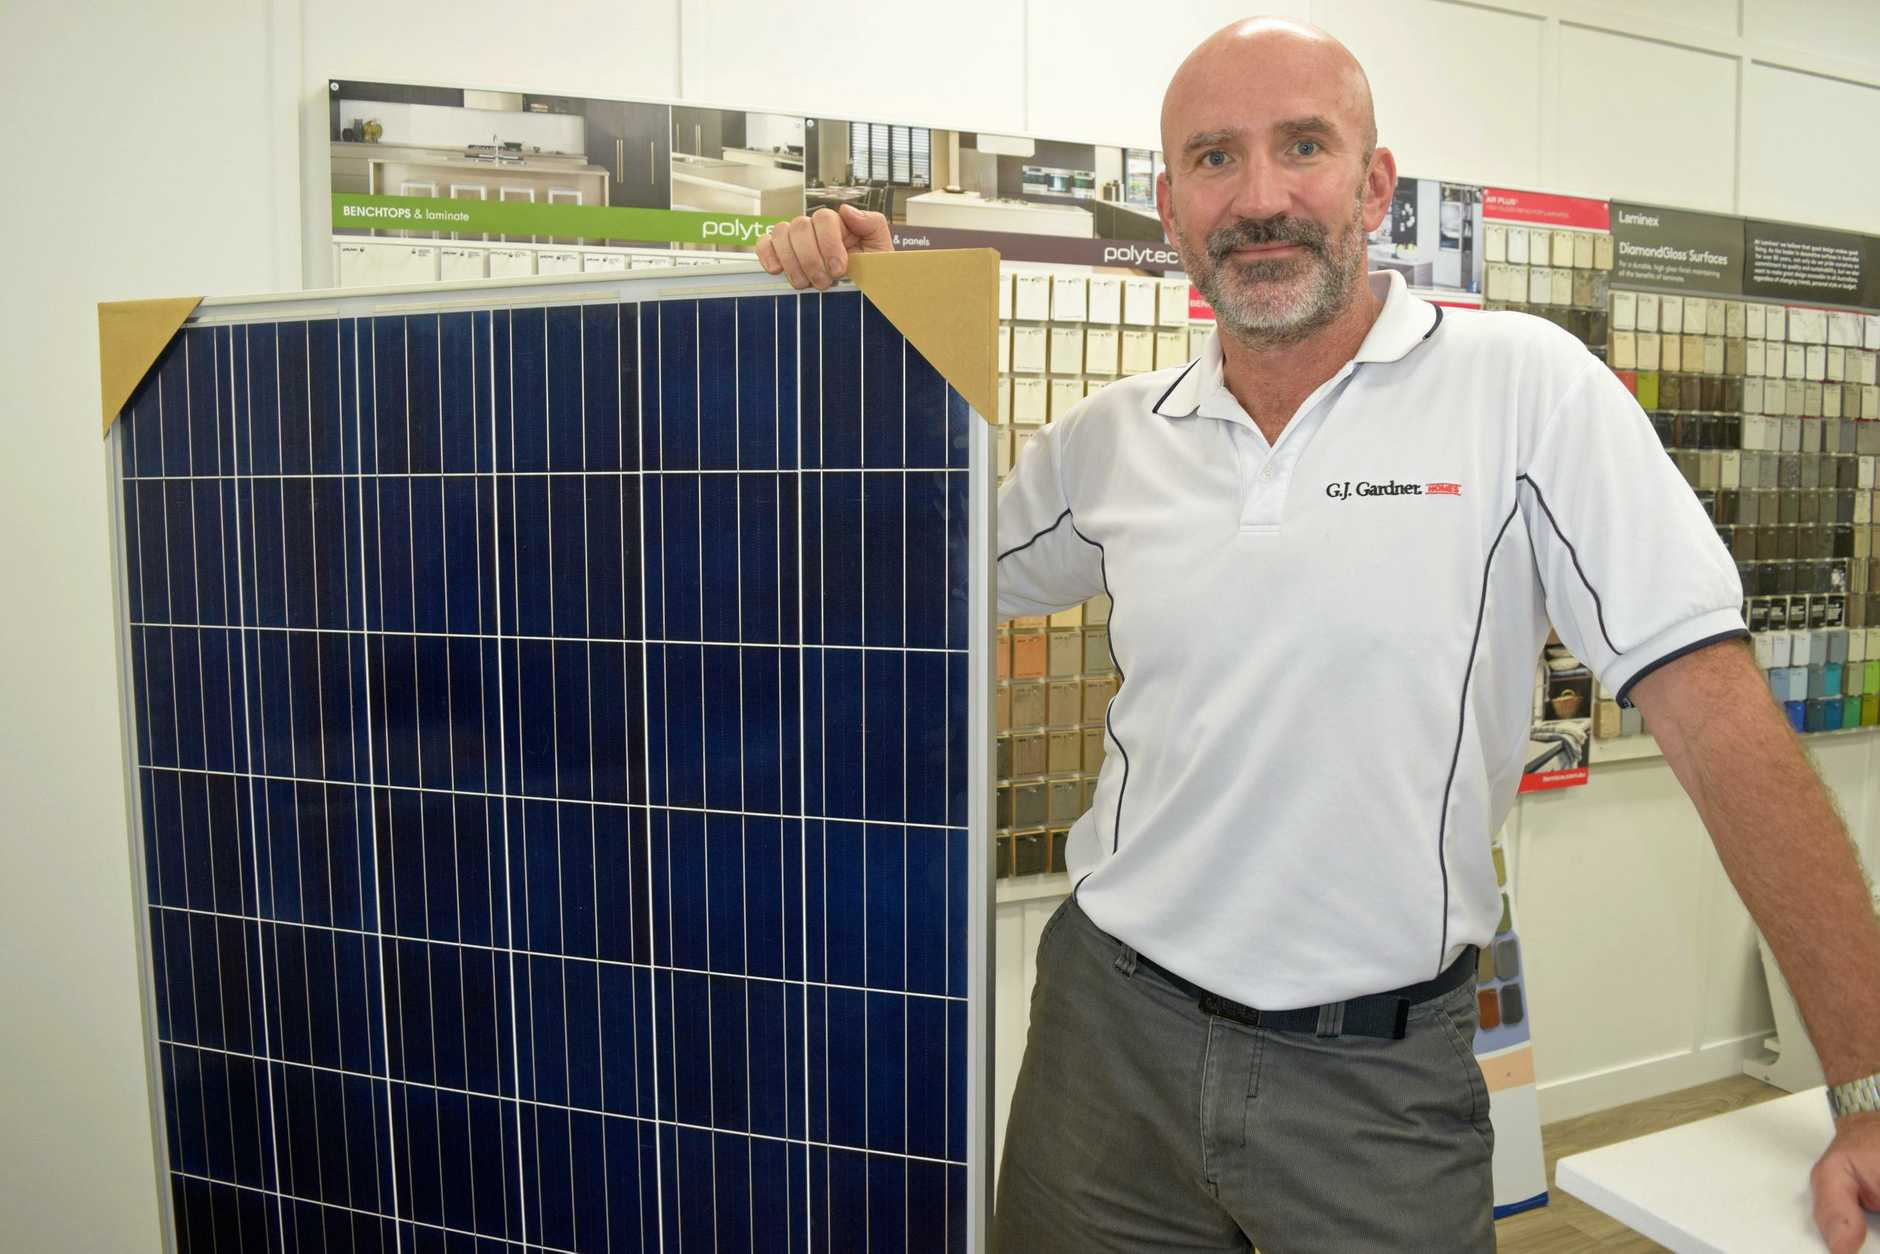 GYMPIE'S GJ Gardener franchisee Wojtek Stainwald with the new battery powered solar panels.